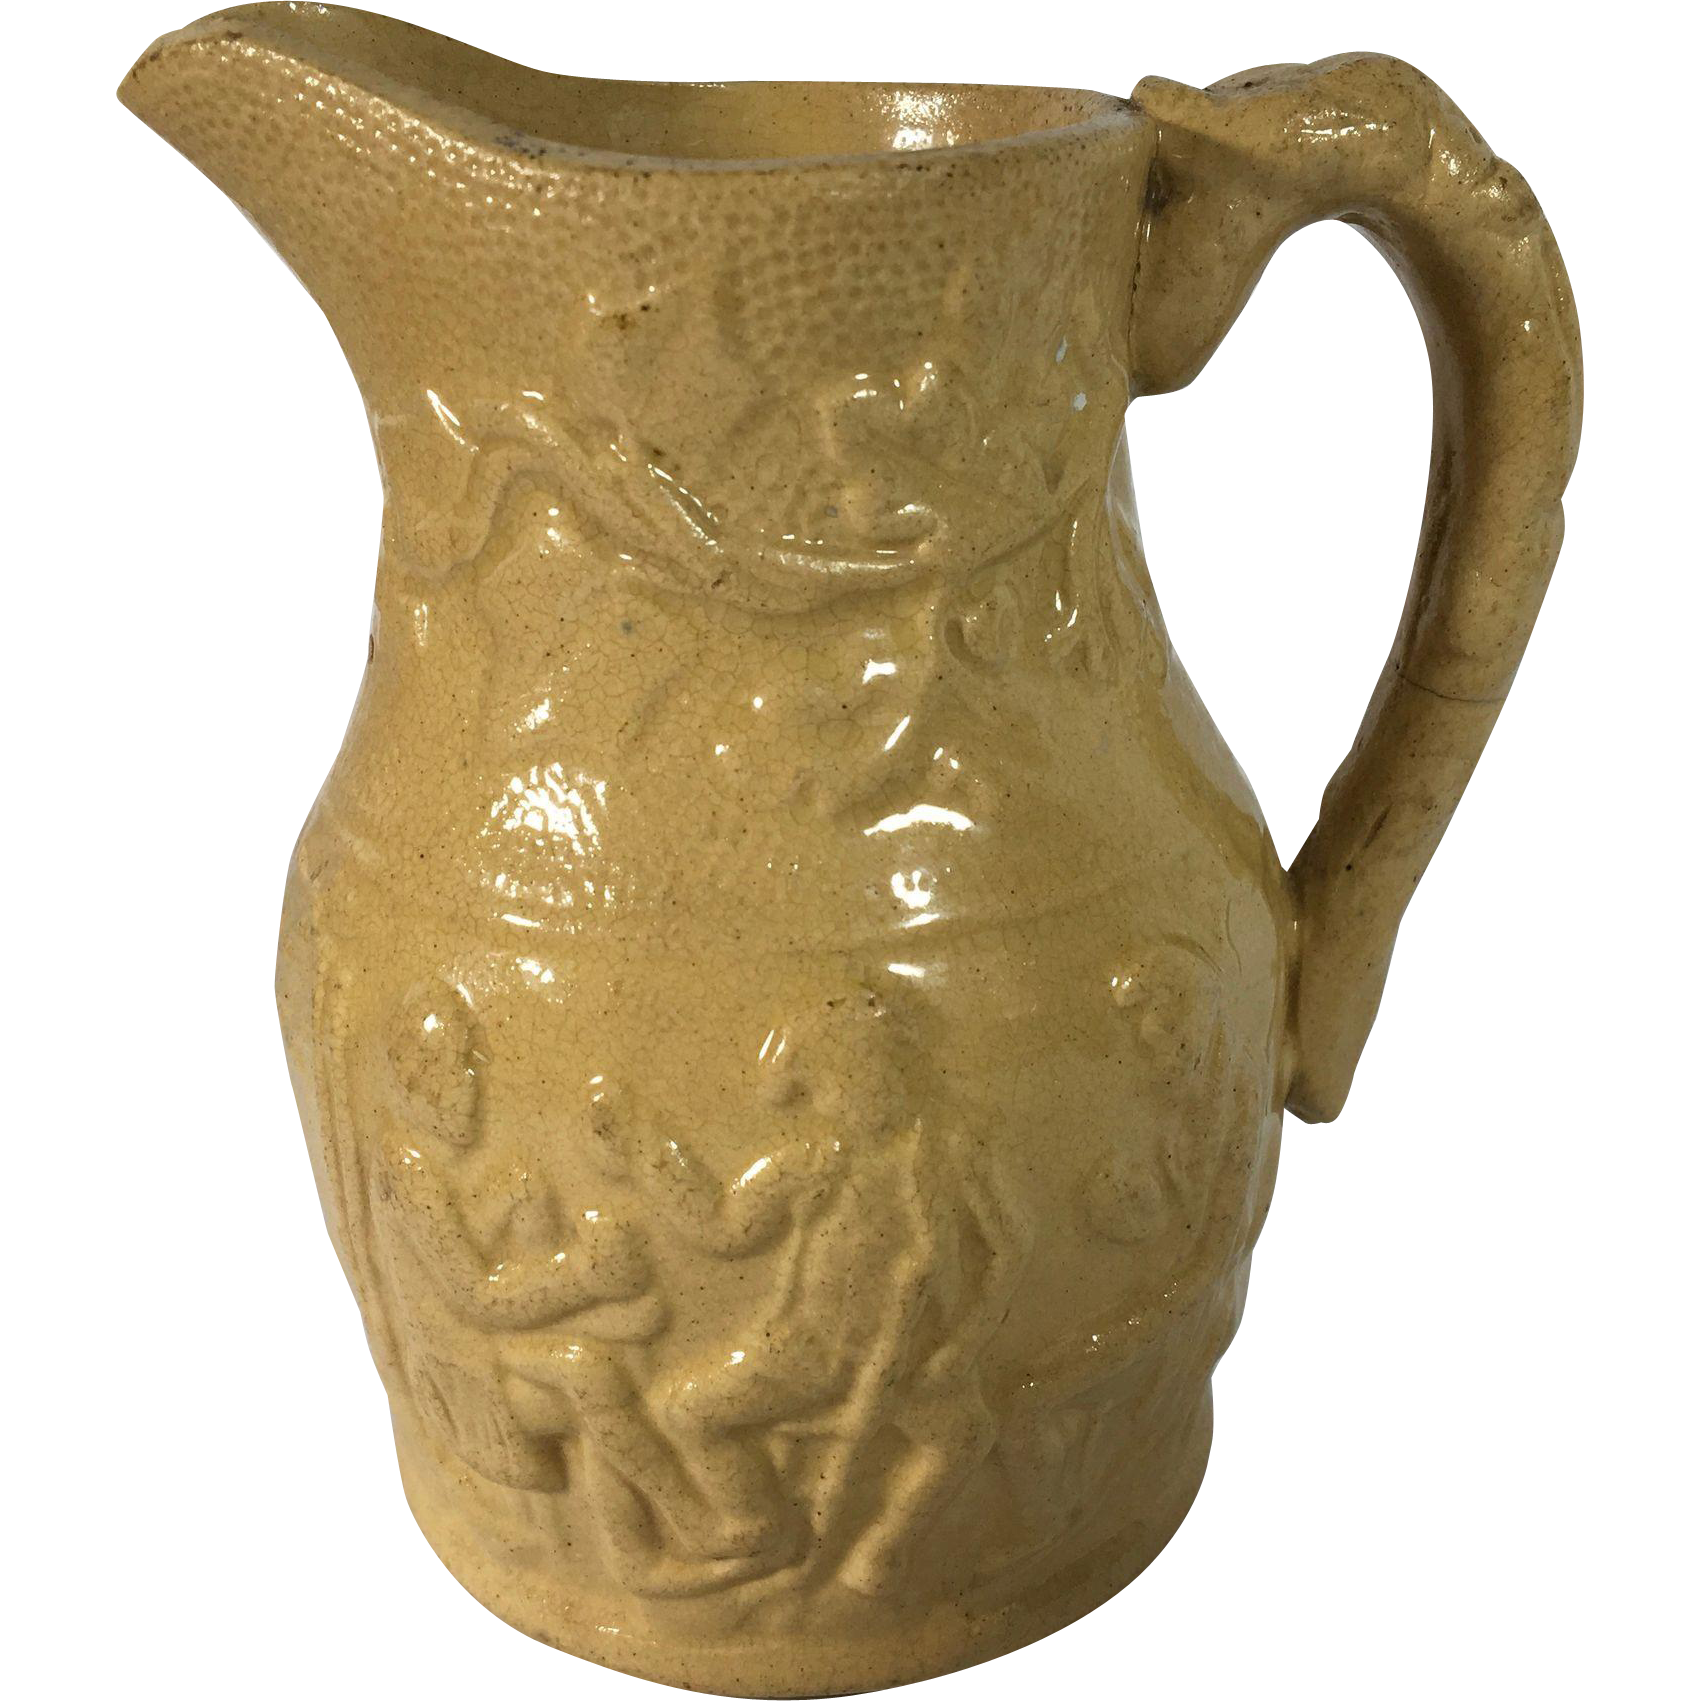 C.1830-1840 English Yellow Ware Jug